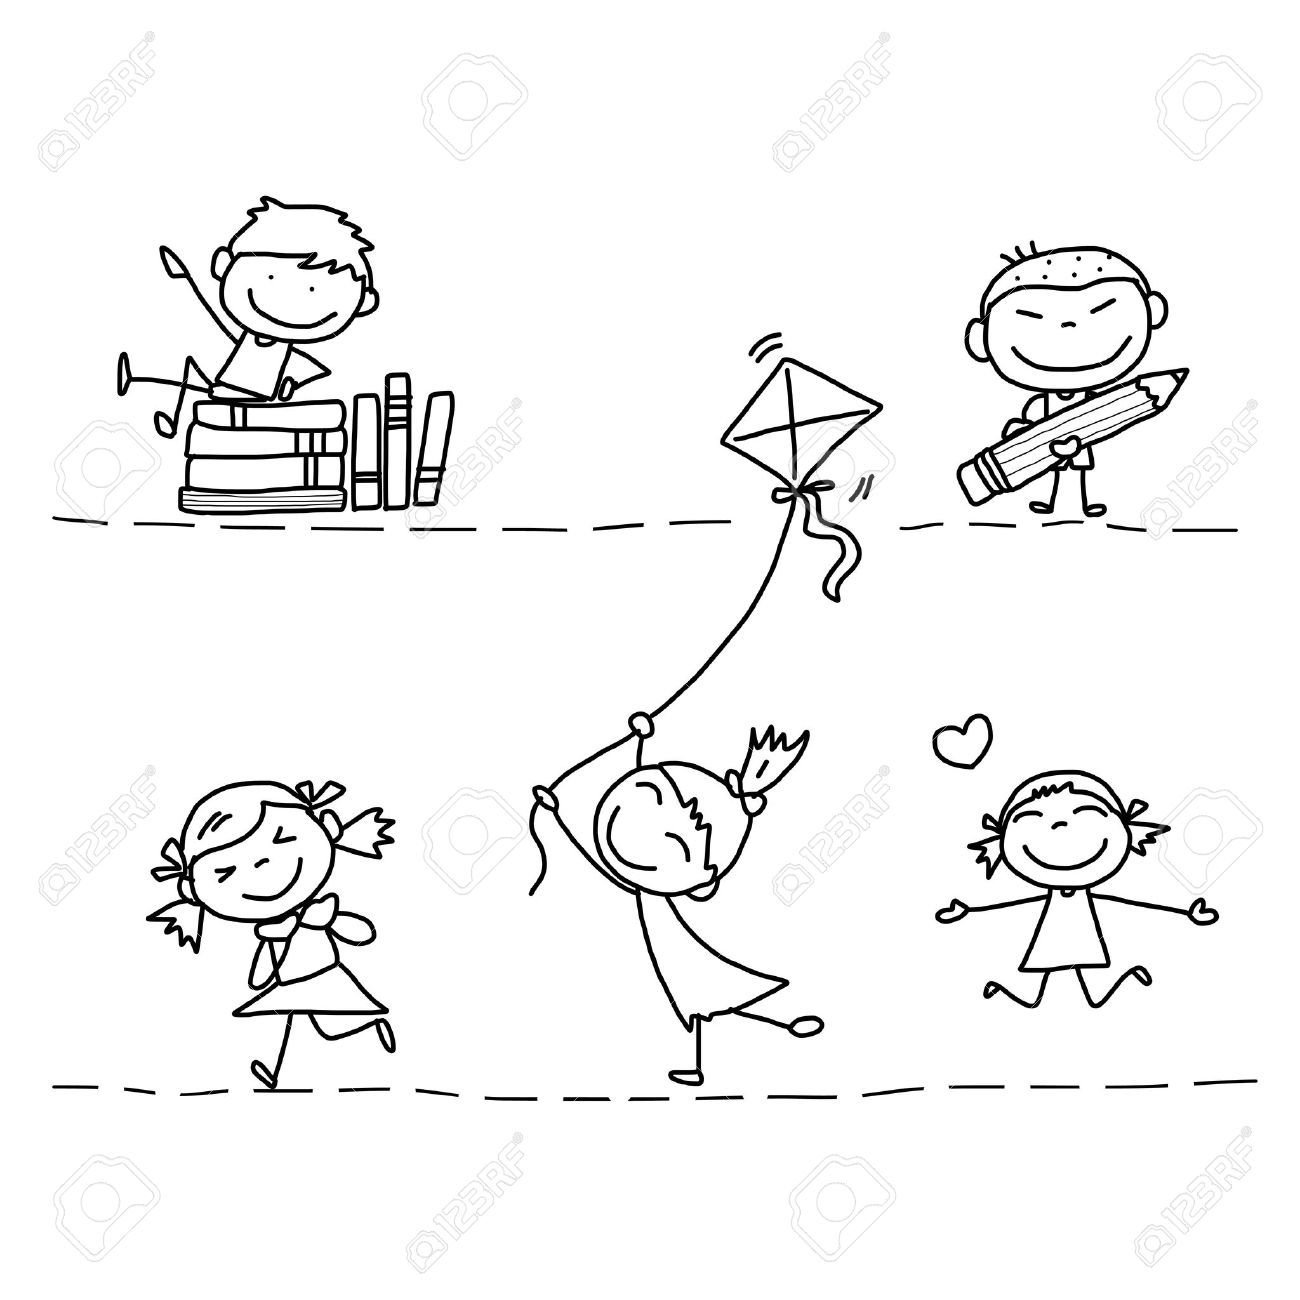 1300x1300 Photos Line Drawings Of Children Playing,